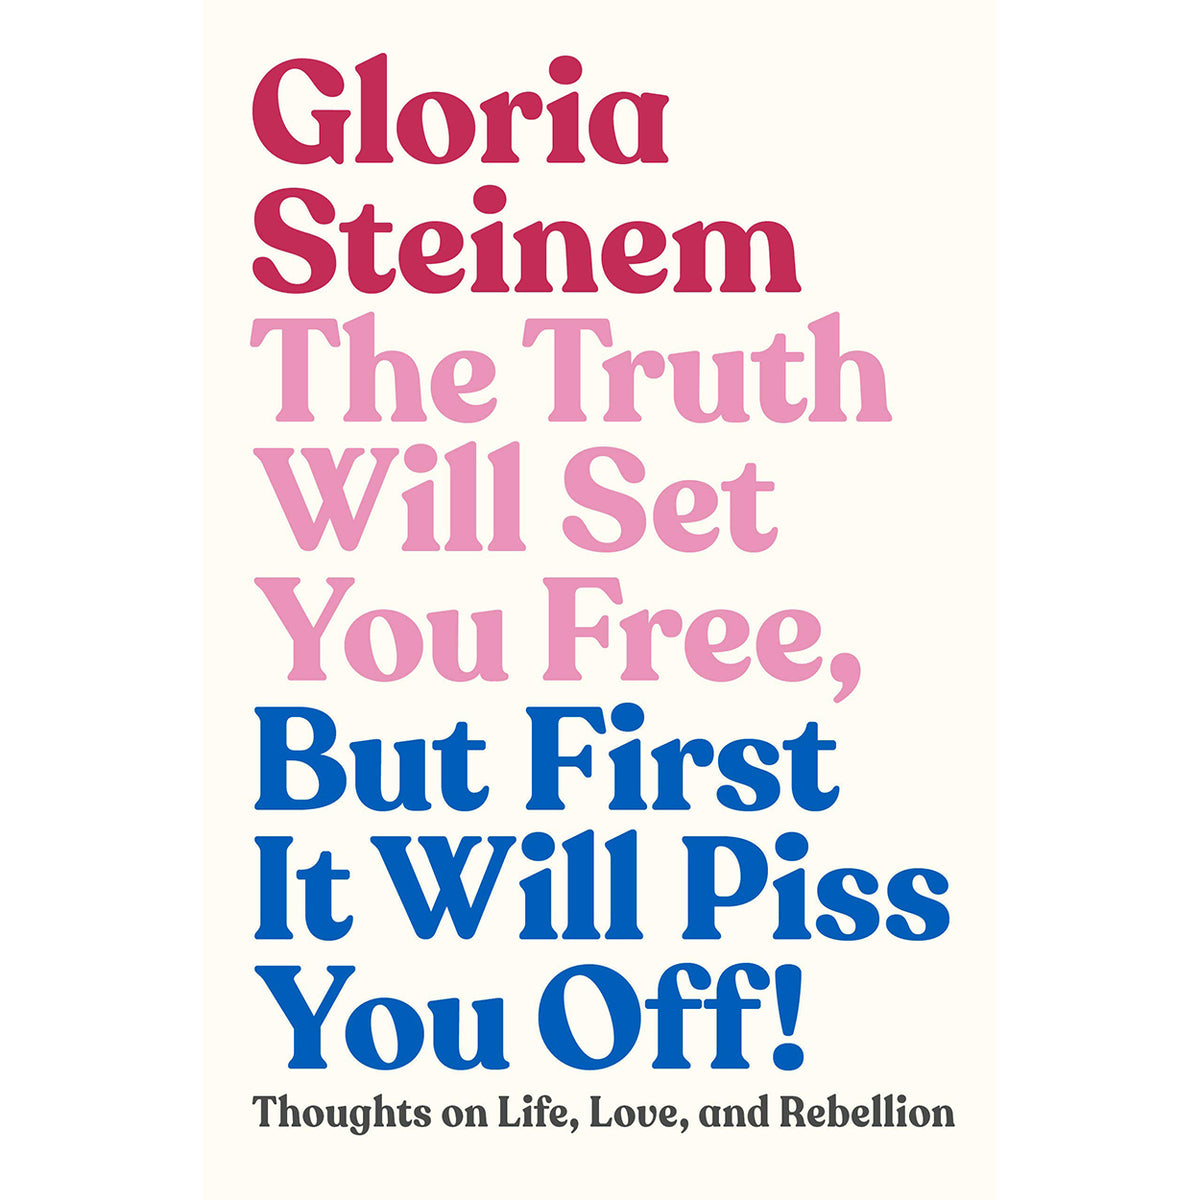 Cover of The Truth Will Set You Free, But First It Will Piss You Off by Gloria Steinem